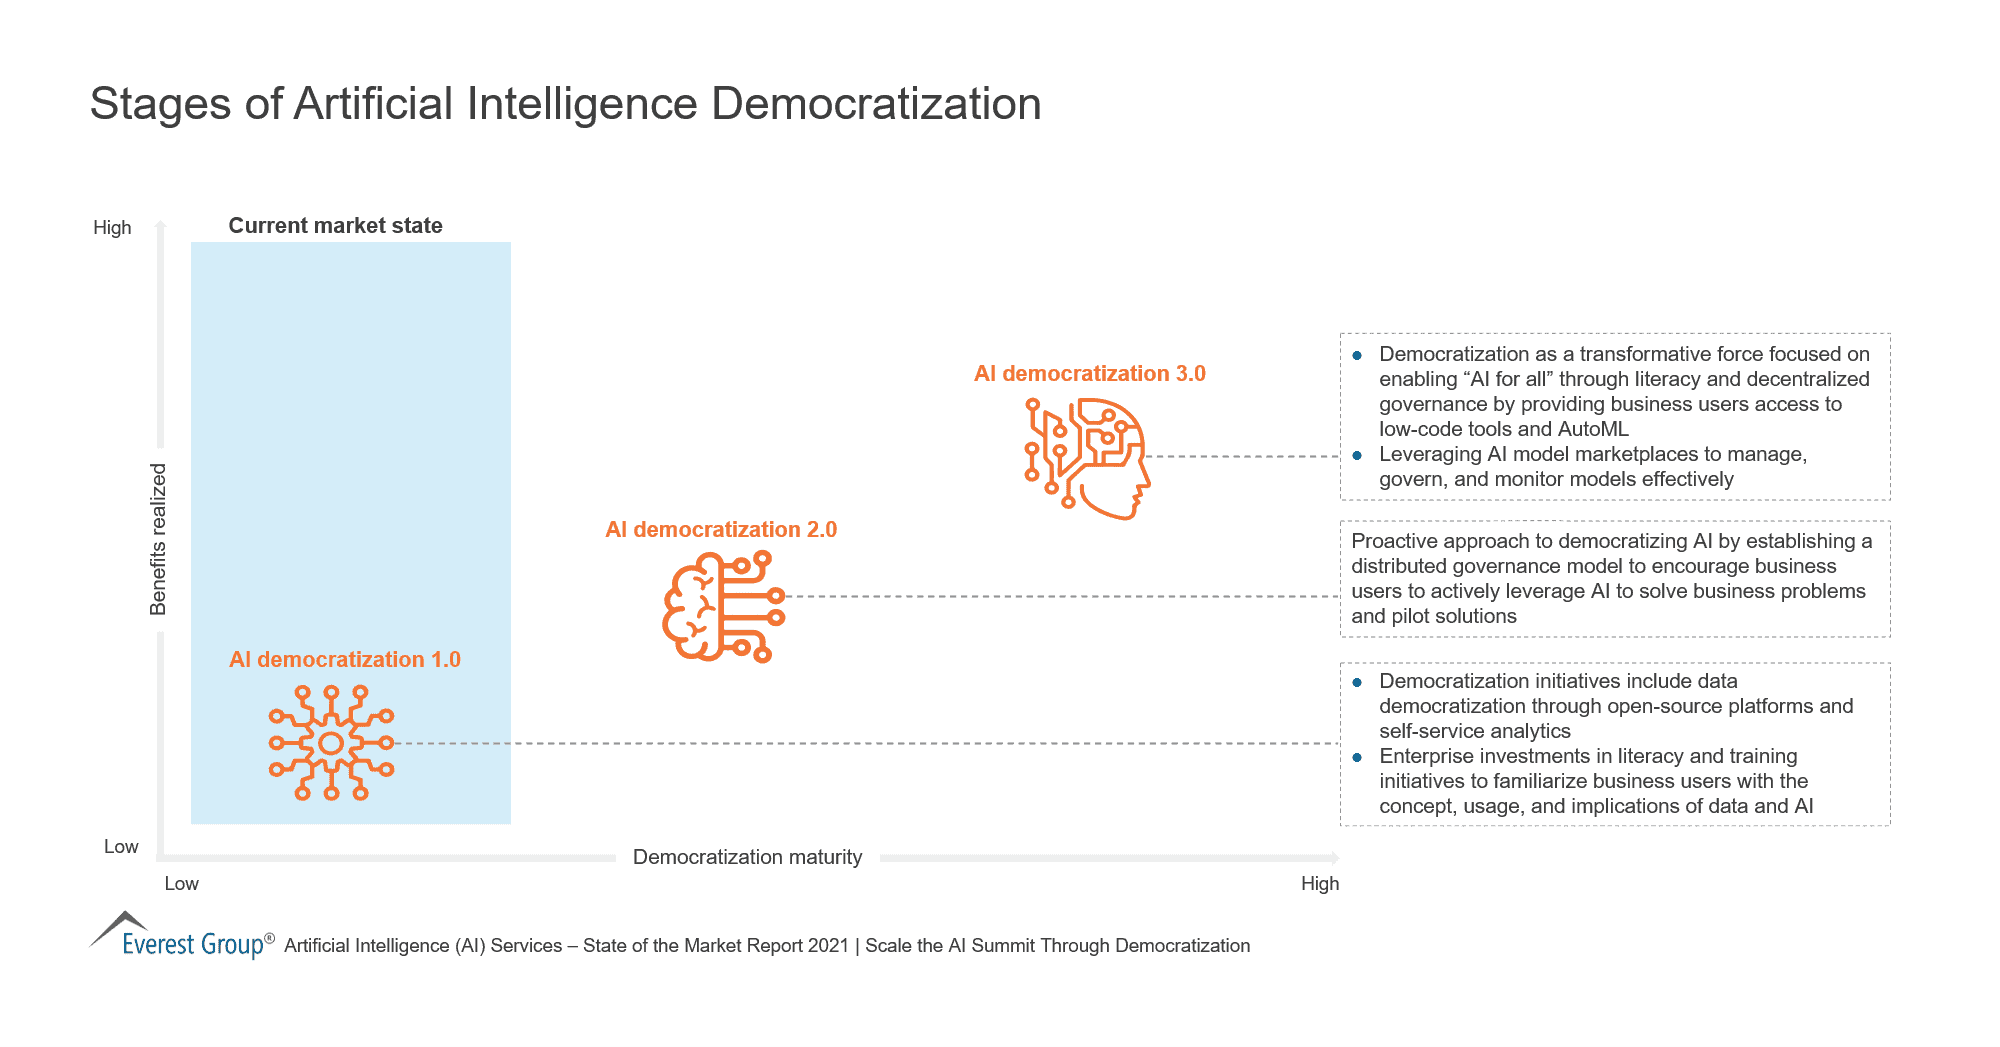 Stages of Artificial Intelligence Democratization